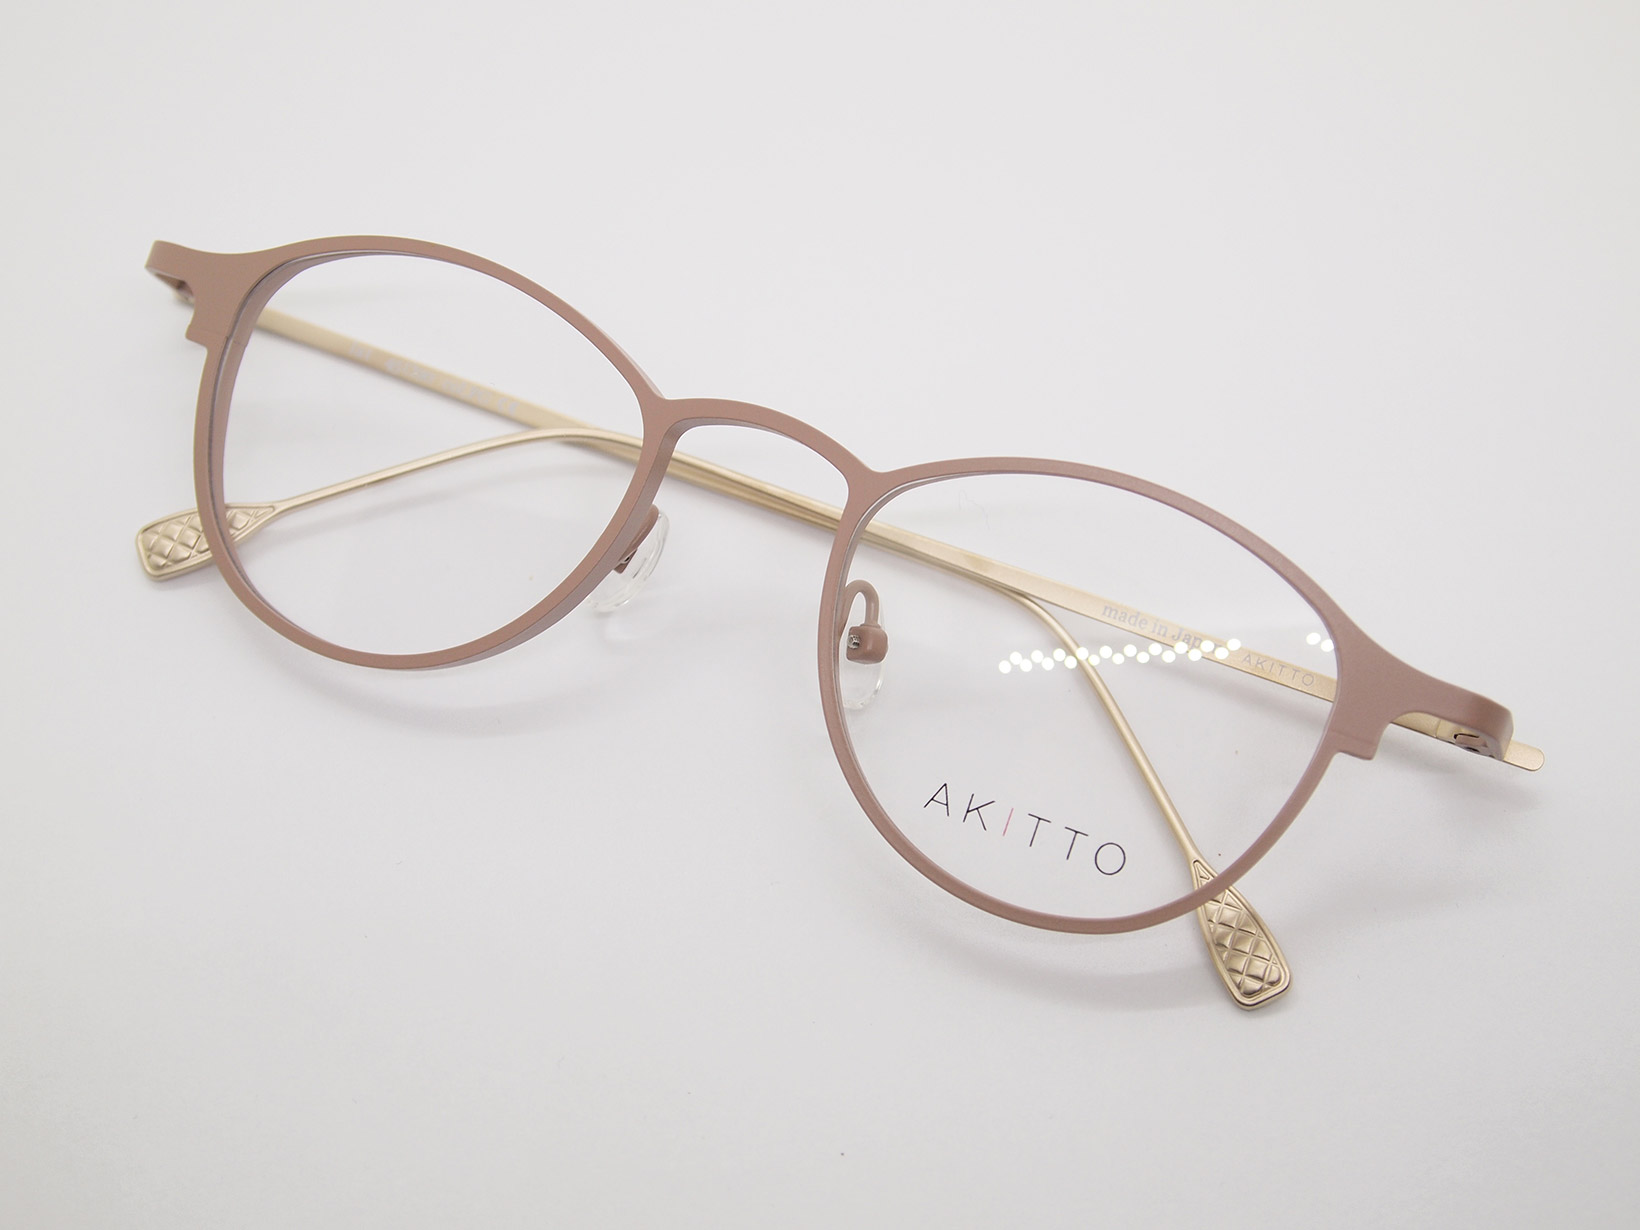 AKITTO 2021-4th lat color|PG size:45□20 material:titanium price:¥46,200-(税込み)